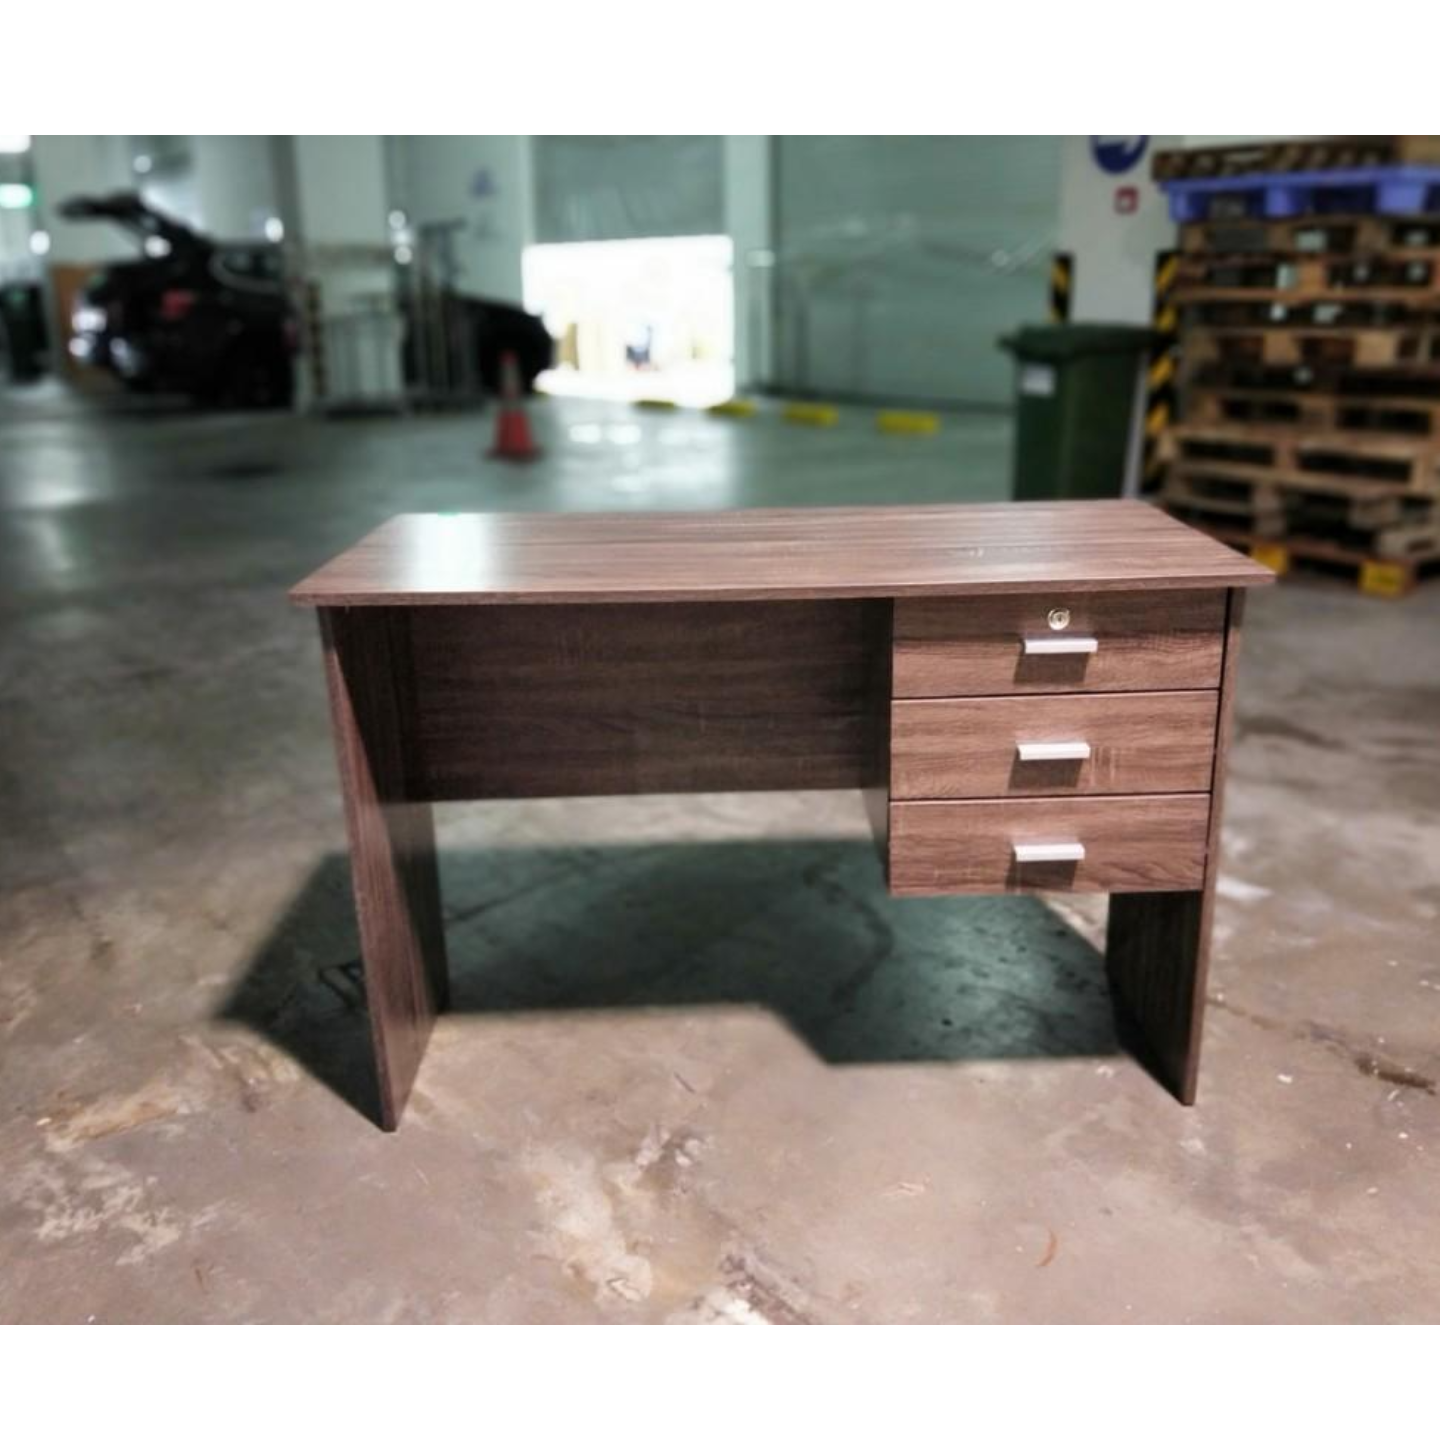 EQUARDO Writing Desk in WALNUT